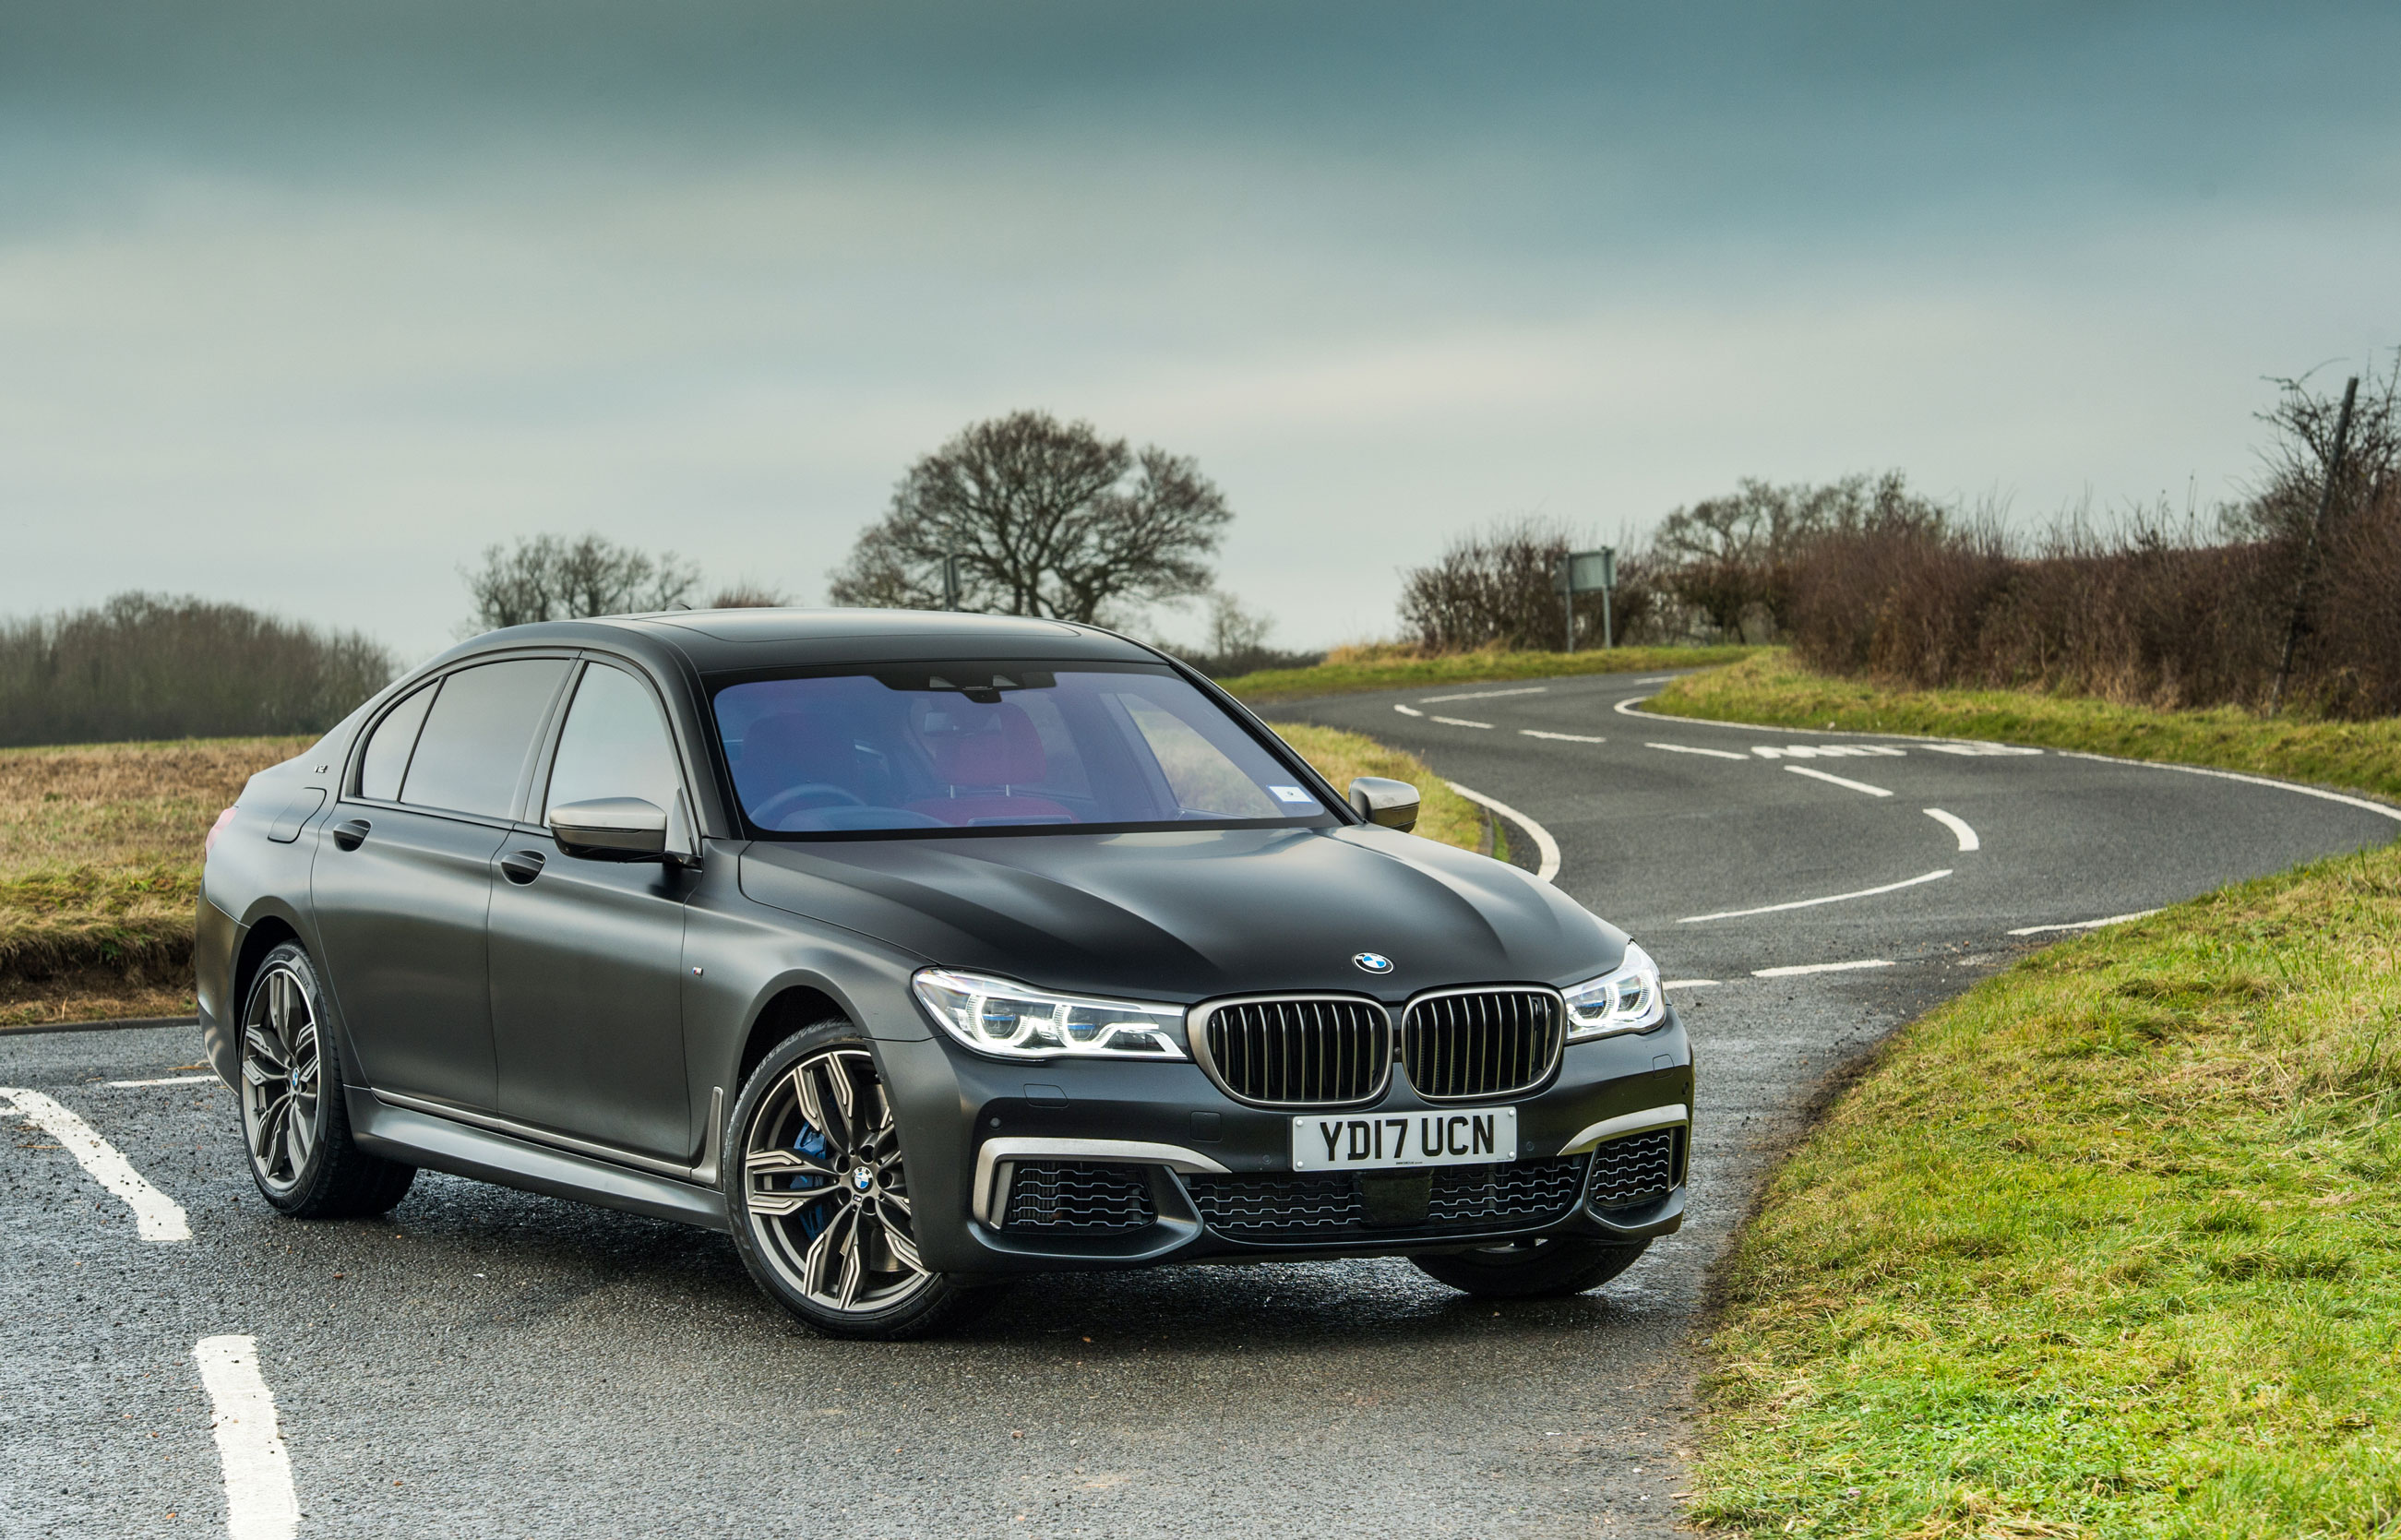 Bmw M760 Li Xdrive Review Prices Specs And 0 60 Time Evo